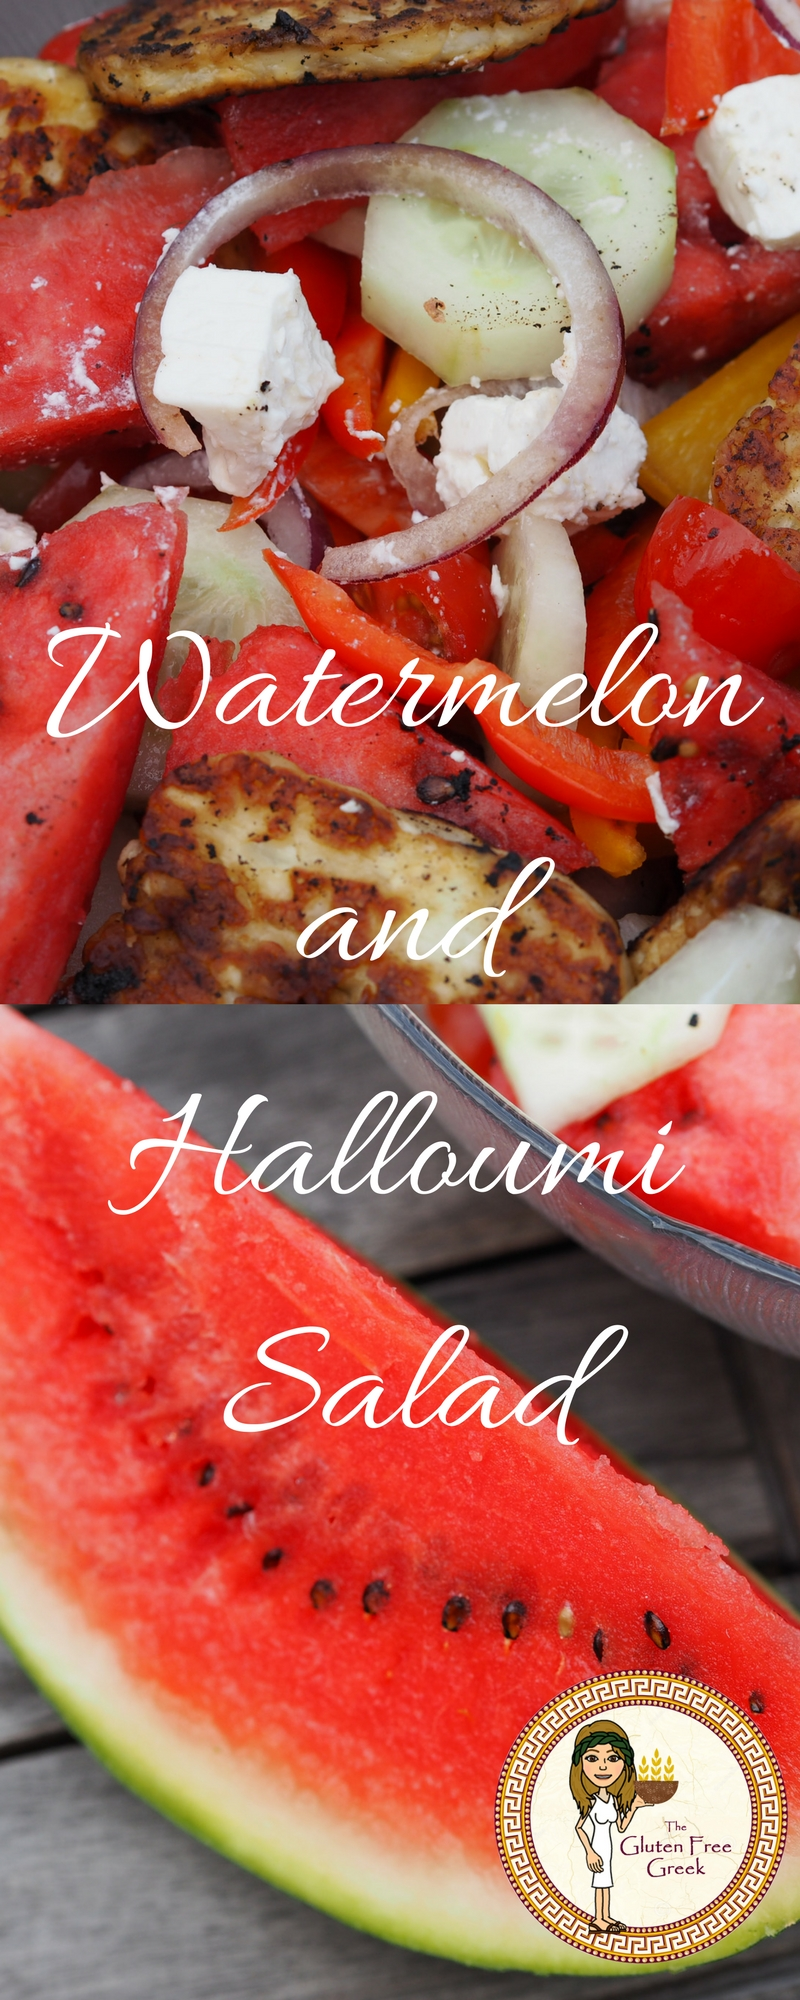 watermelon and halloumi pinterest